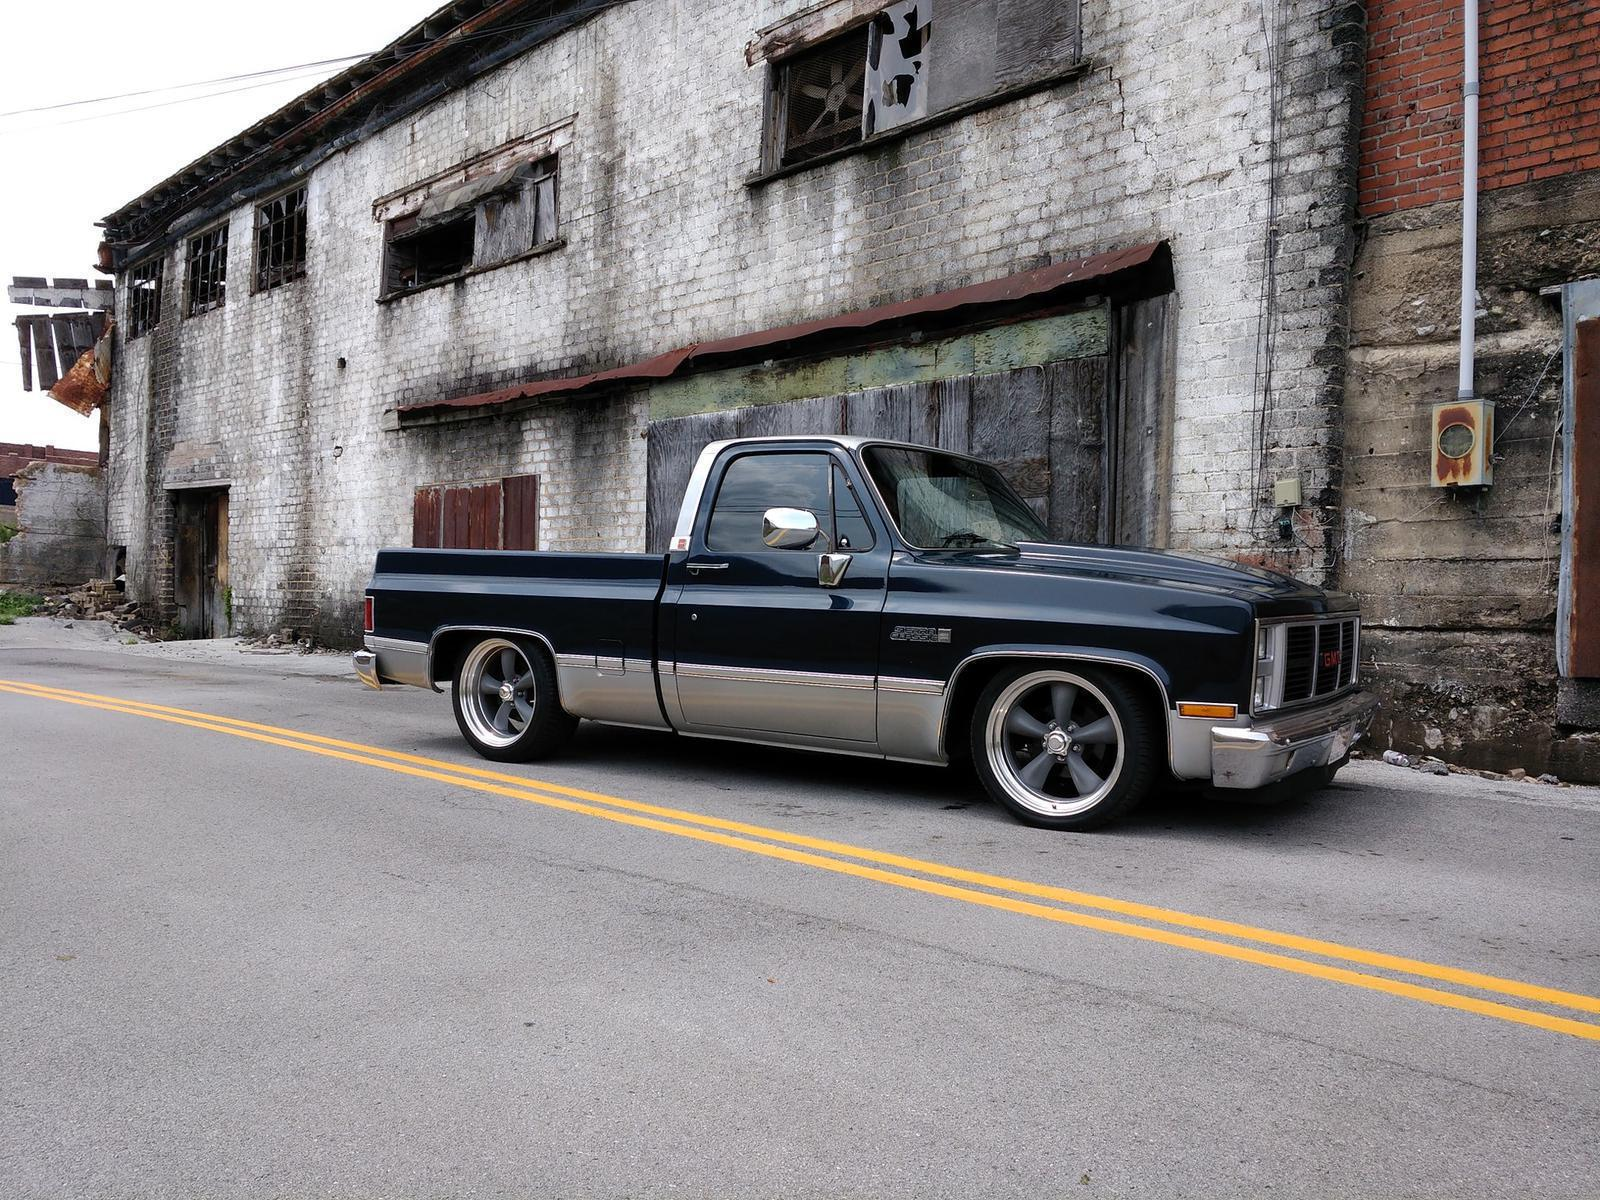 1982 GMC Sierra Classic C10 Fleetside for sale in Key Largo